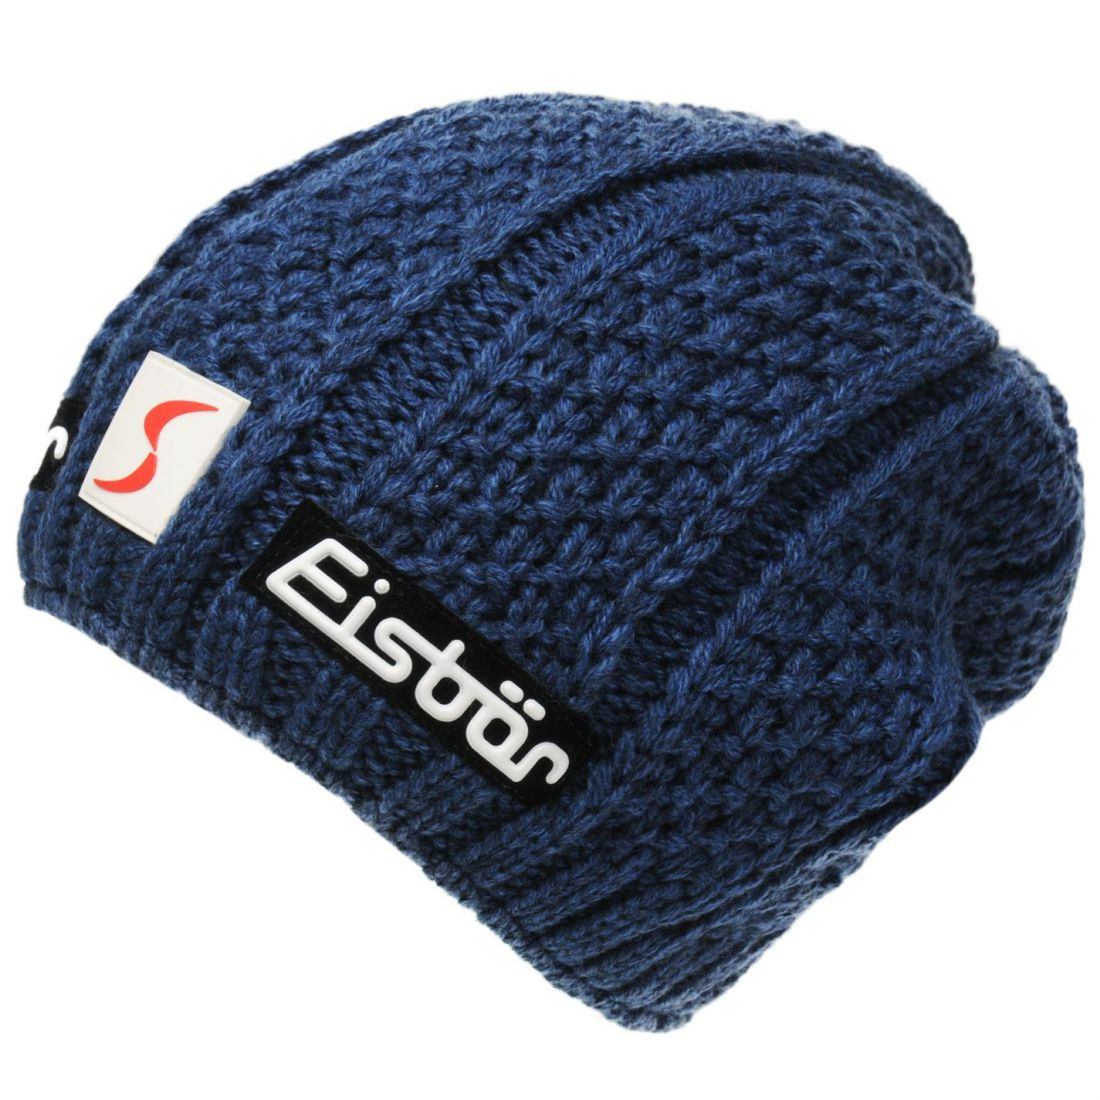 Details about Eisbar Mens Gents Marty Hat Sport Activities Winter Snow  Headwear Accessory a32ab65a918